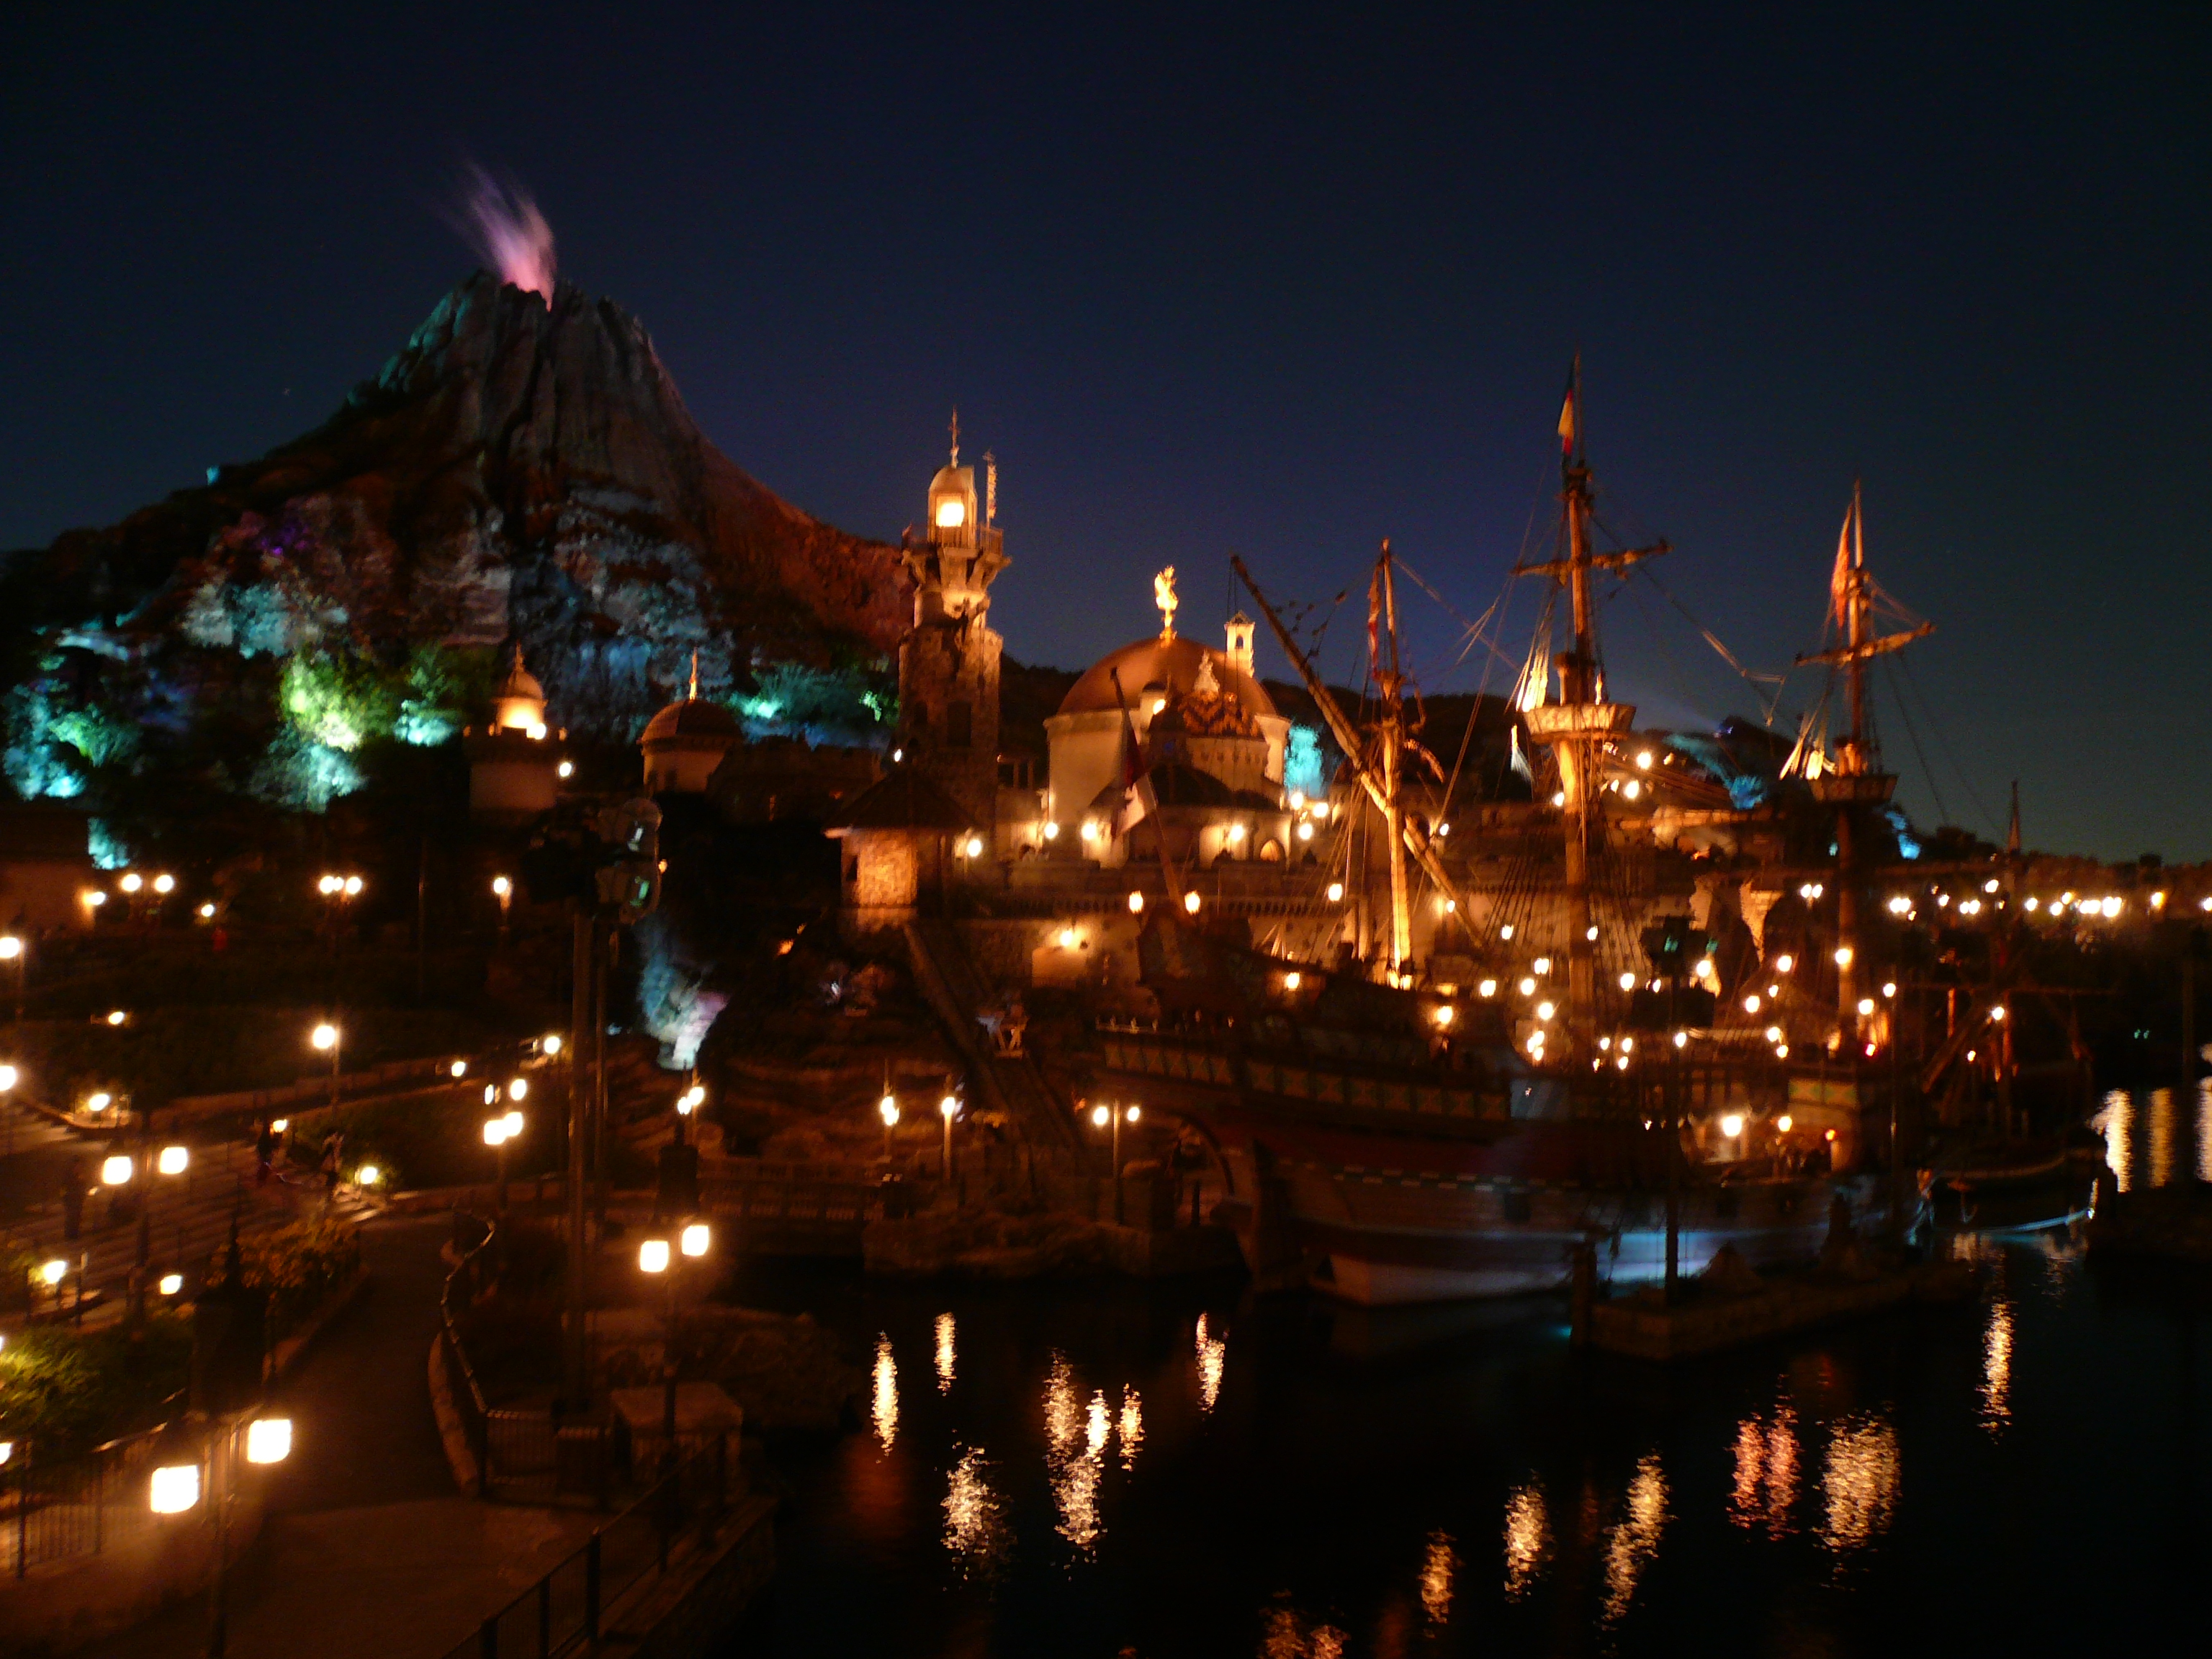 file:the night of disney sea(東京ディズニーシーの夜) - panoramio